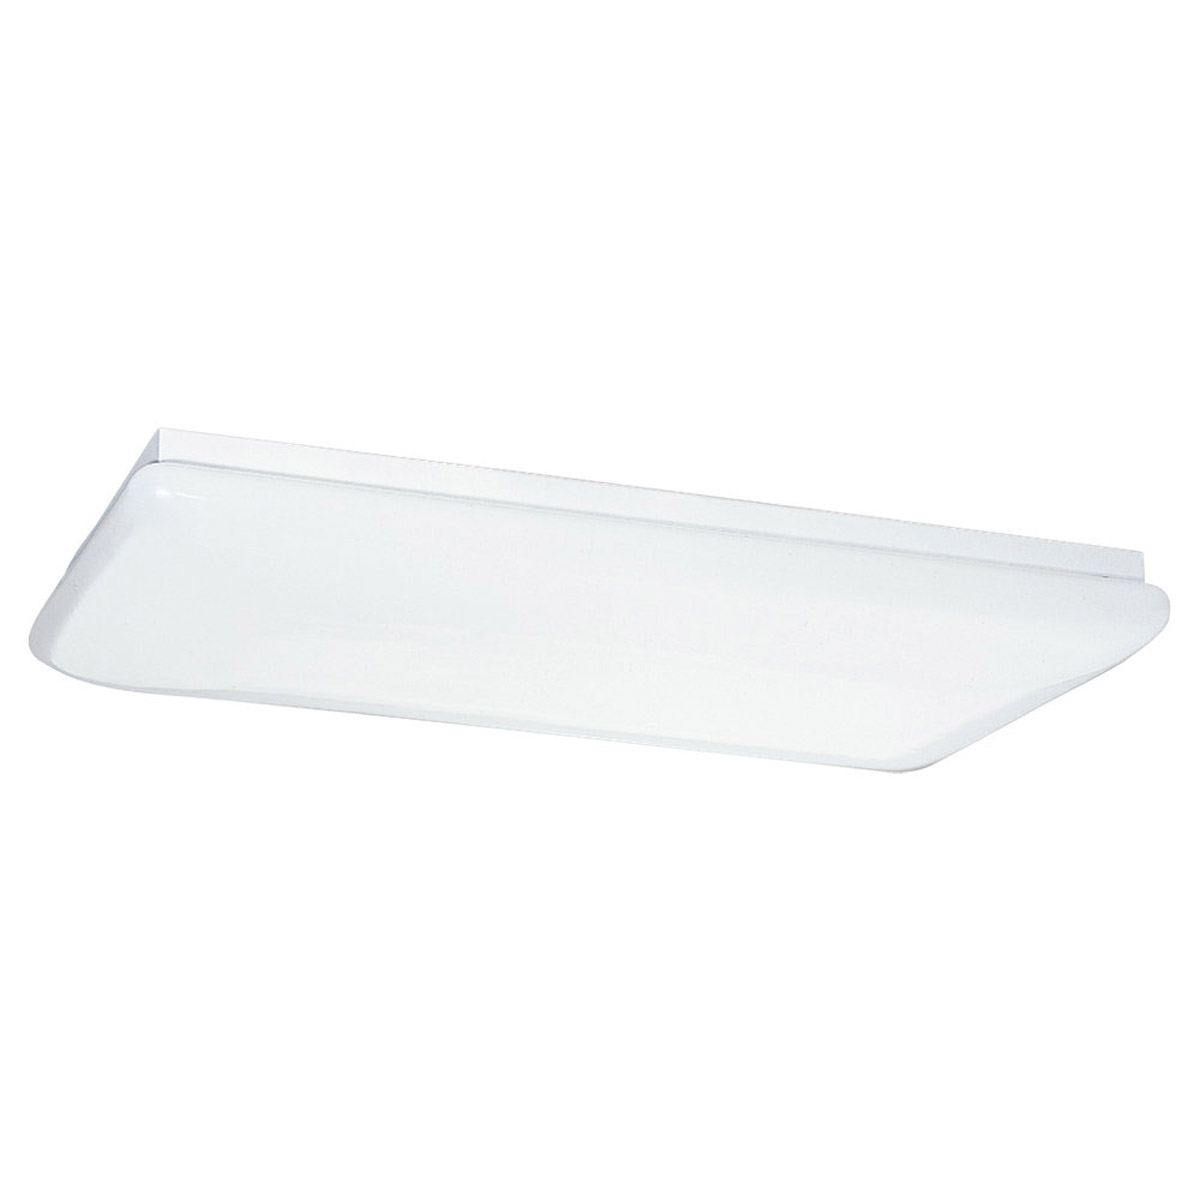 Sea Gull Lighting Signature 4 Light Fluorescent Trim Only in White Plastic 5913-68